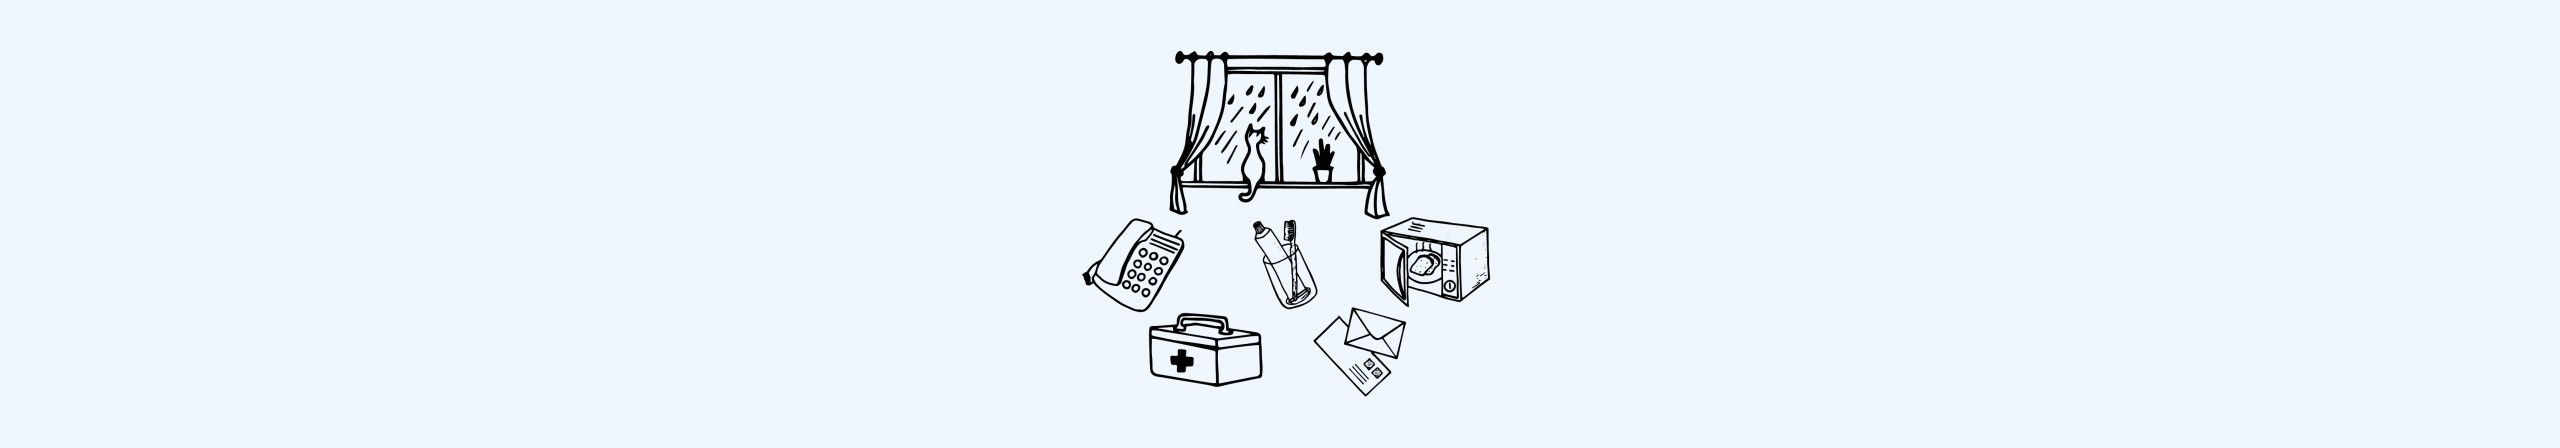 Illustration of health and wellbeing objects.